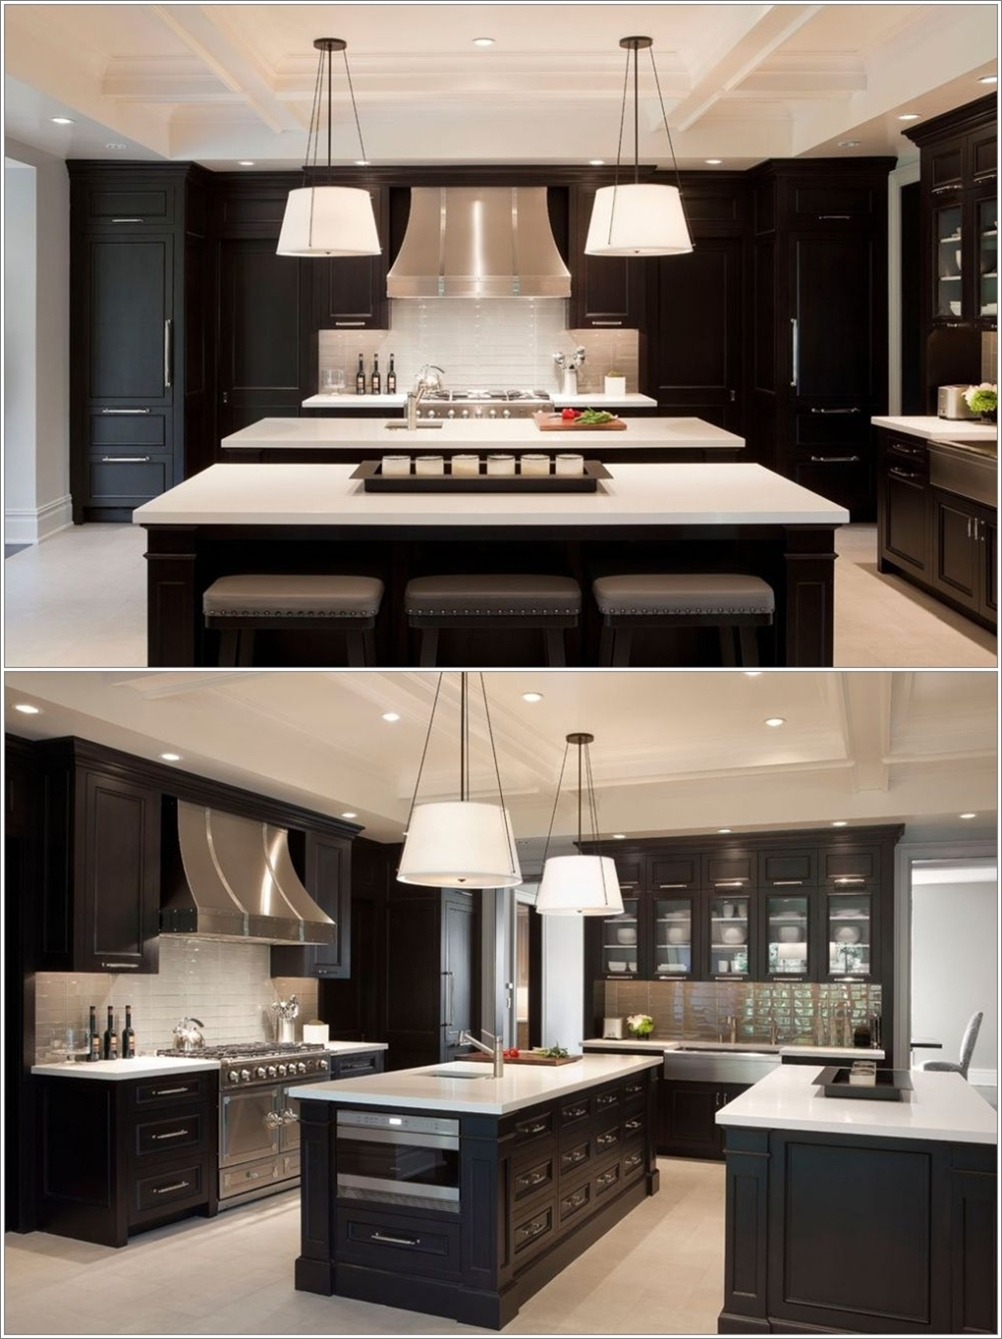 Uncategorized Two Island Kitchens double island kitchens more space fun this kitchen with its so elegant and contemporary appeal has a combination of dark brown beige the two islands are also in theme colour hi